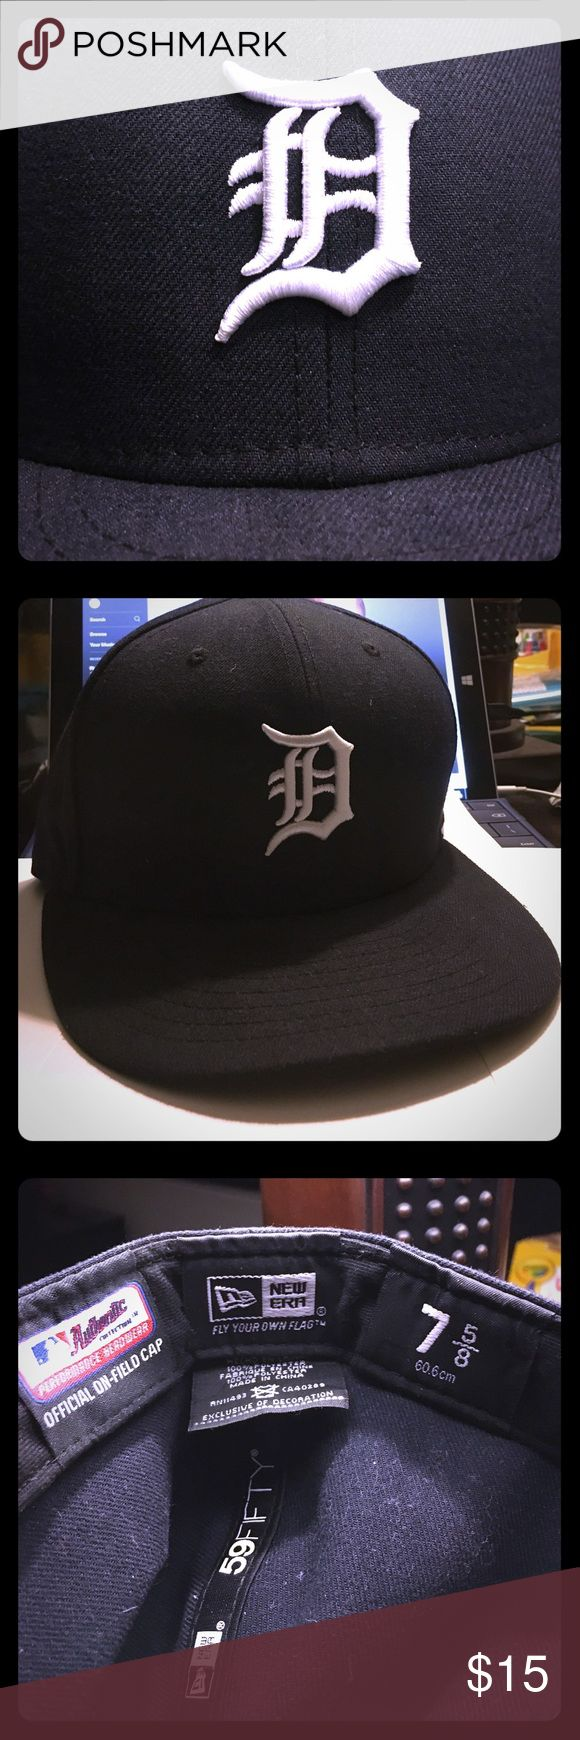 New Era Detroit Tigers MLB Fitted Baseball Cap ⚾️ SIZE 7 5/8 (60.6cm). New Era Detroit Tigers MLB Fitted Baseball Cap. EXCELLENT CONDITION practically new. Satisfaction and shipping in 24 hours guaranteed✅ New Era Accessories Hats